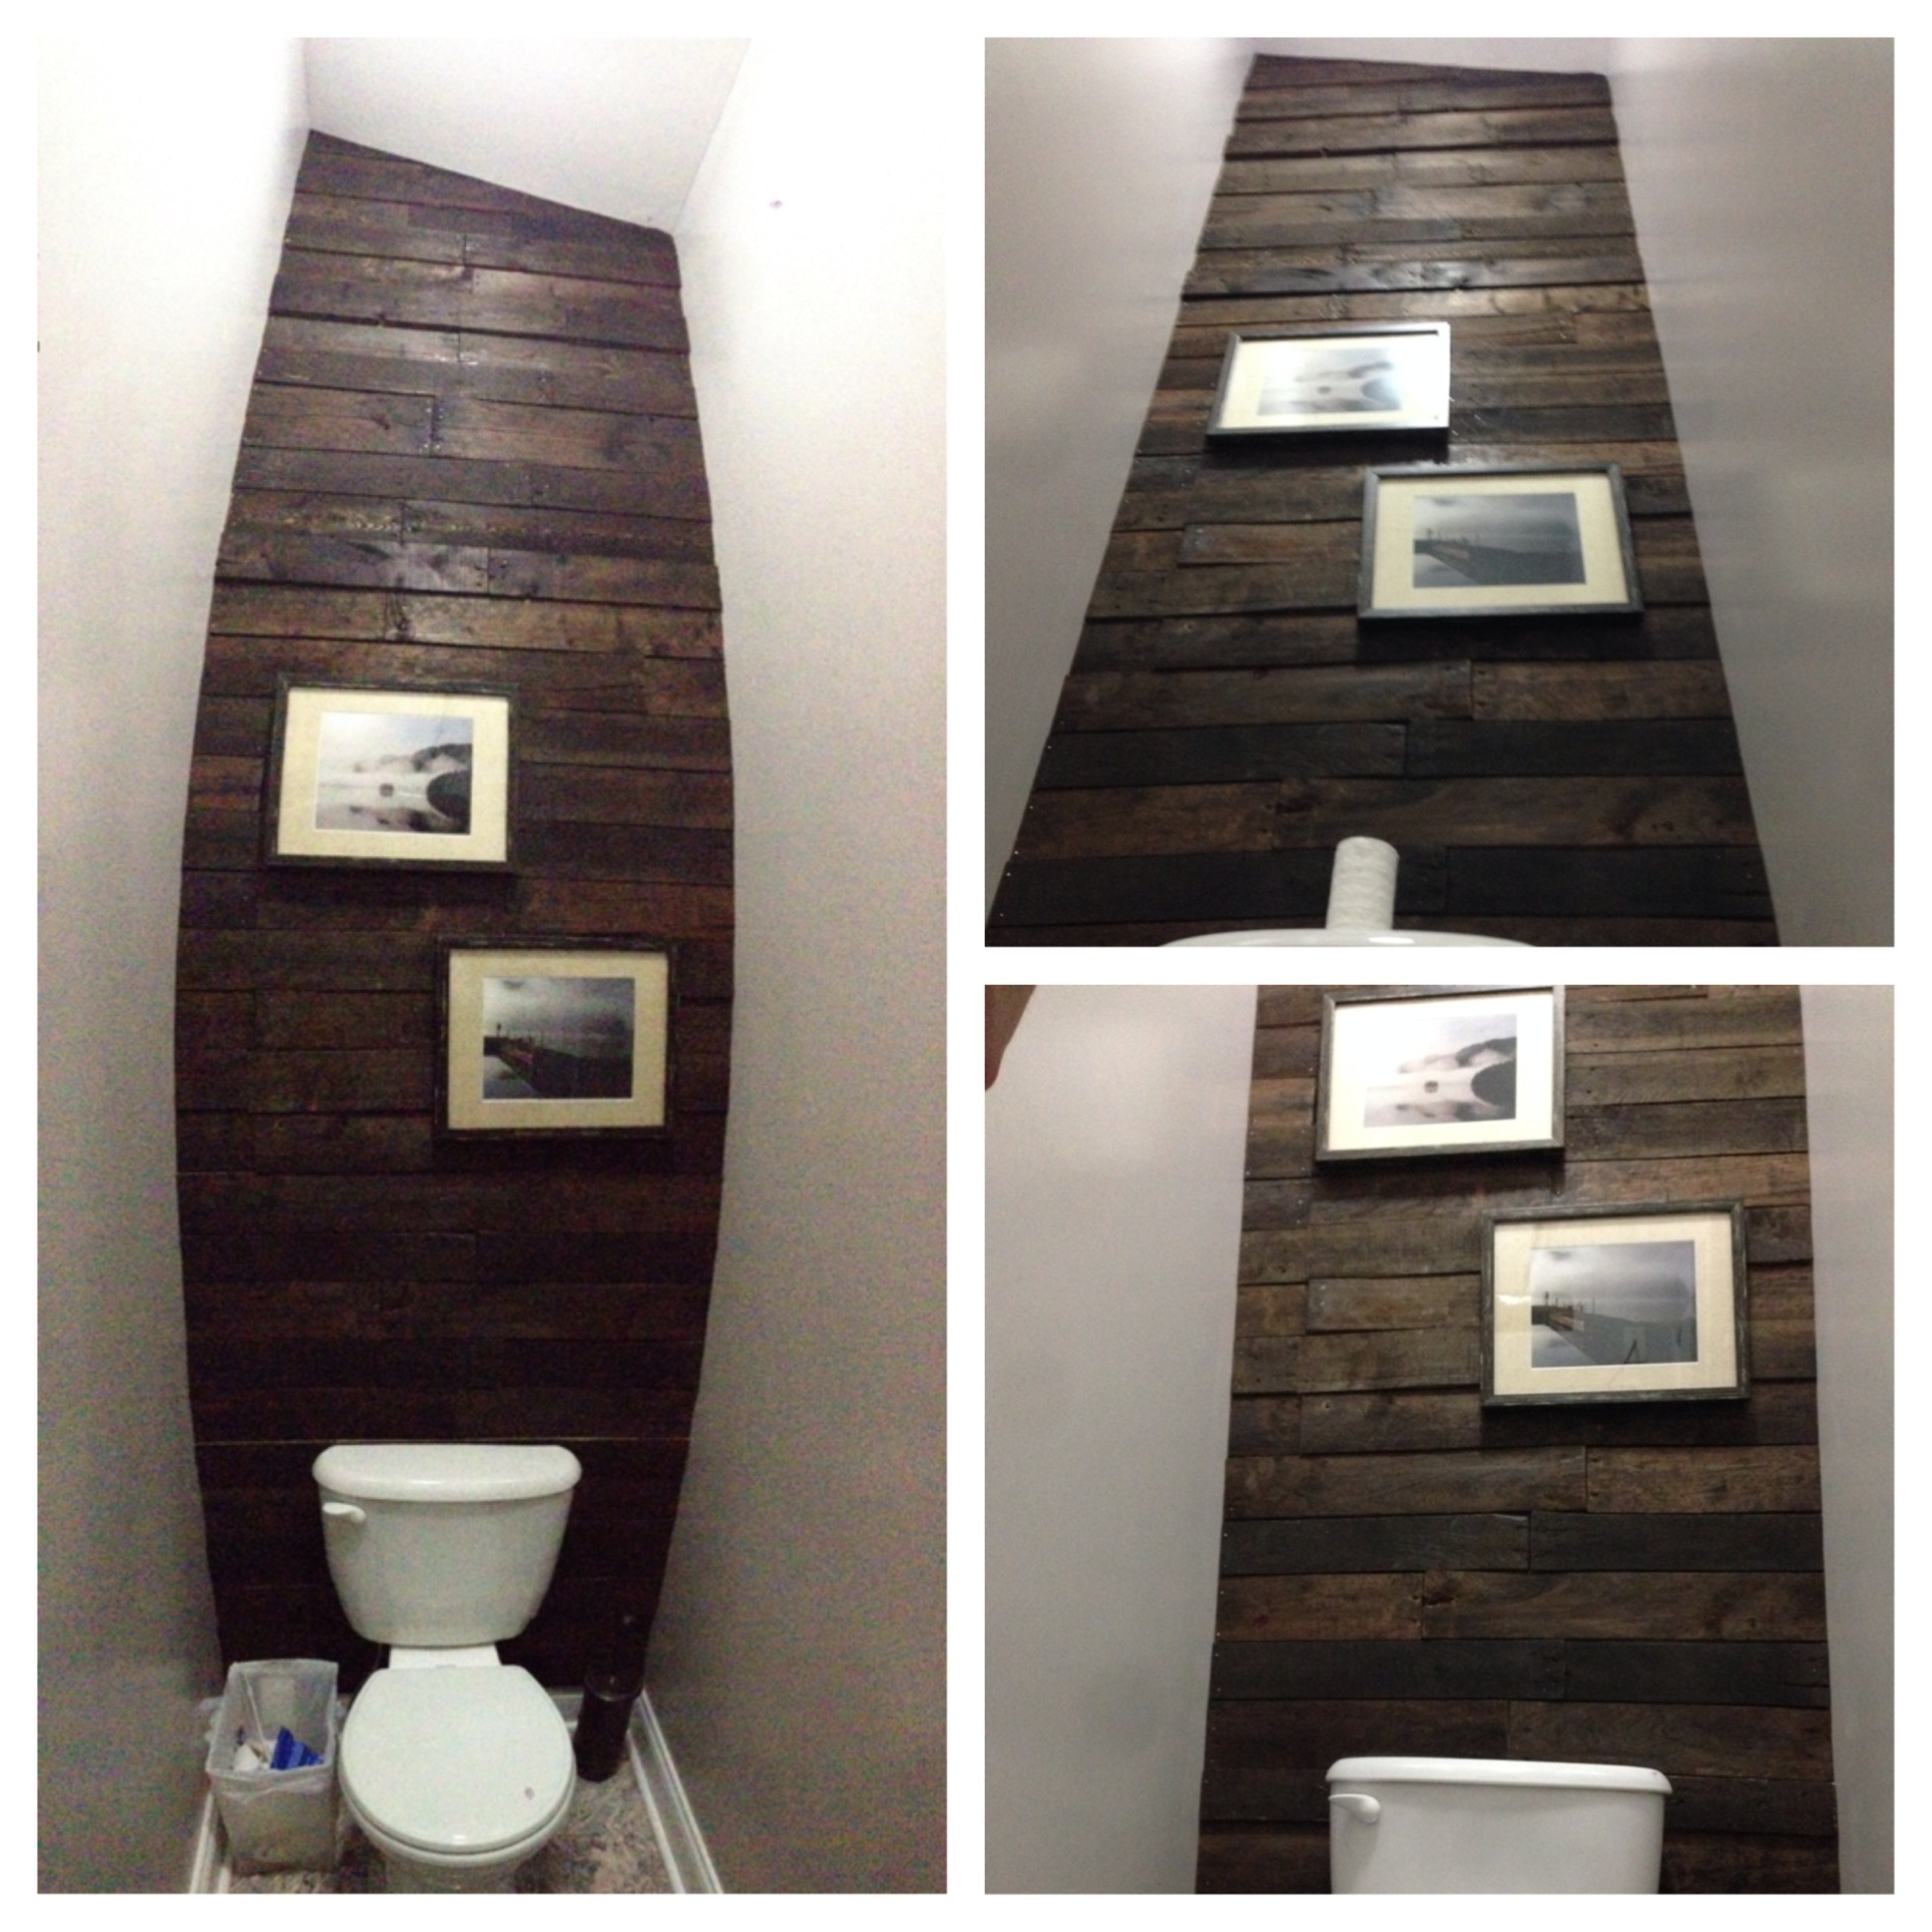 Pallet Accent Wall In Water Closet – Cut Up About 7 Pallets To Get Throughout Best And Newest Wall Accents Behind Toilet (View 11 of 15)